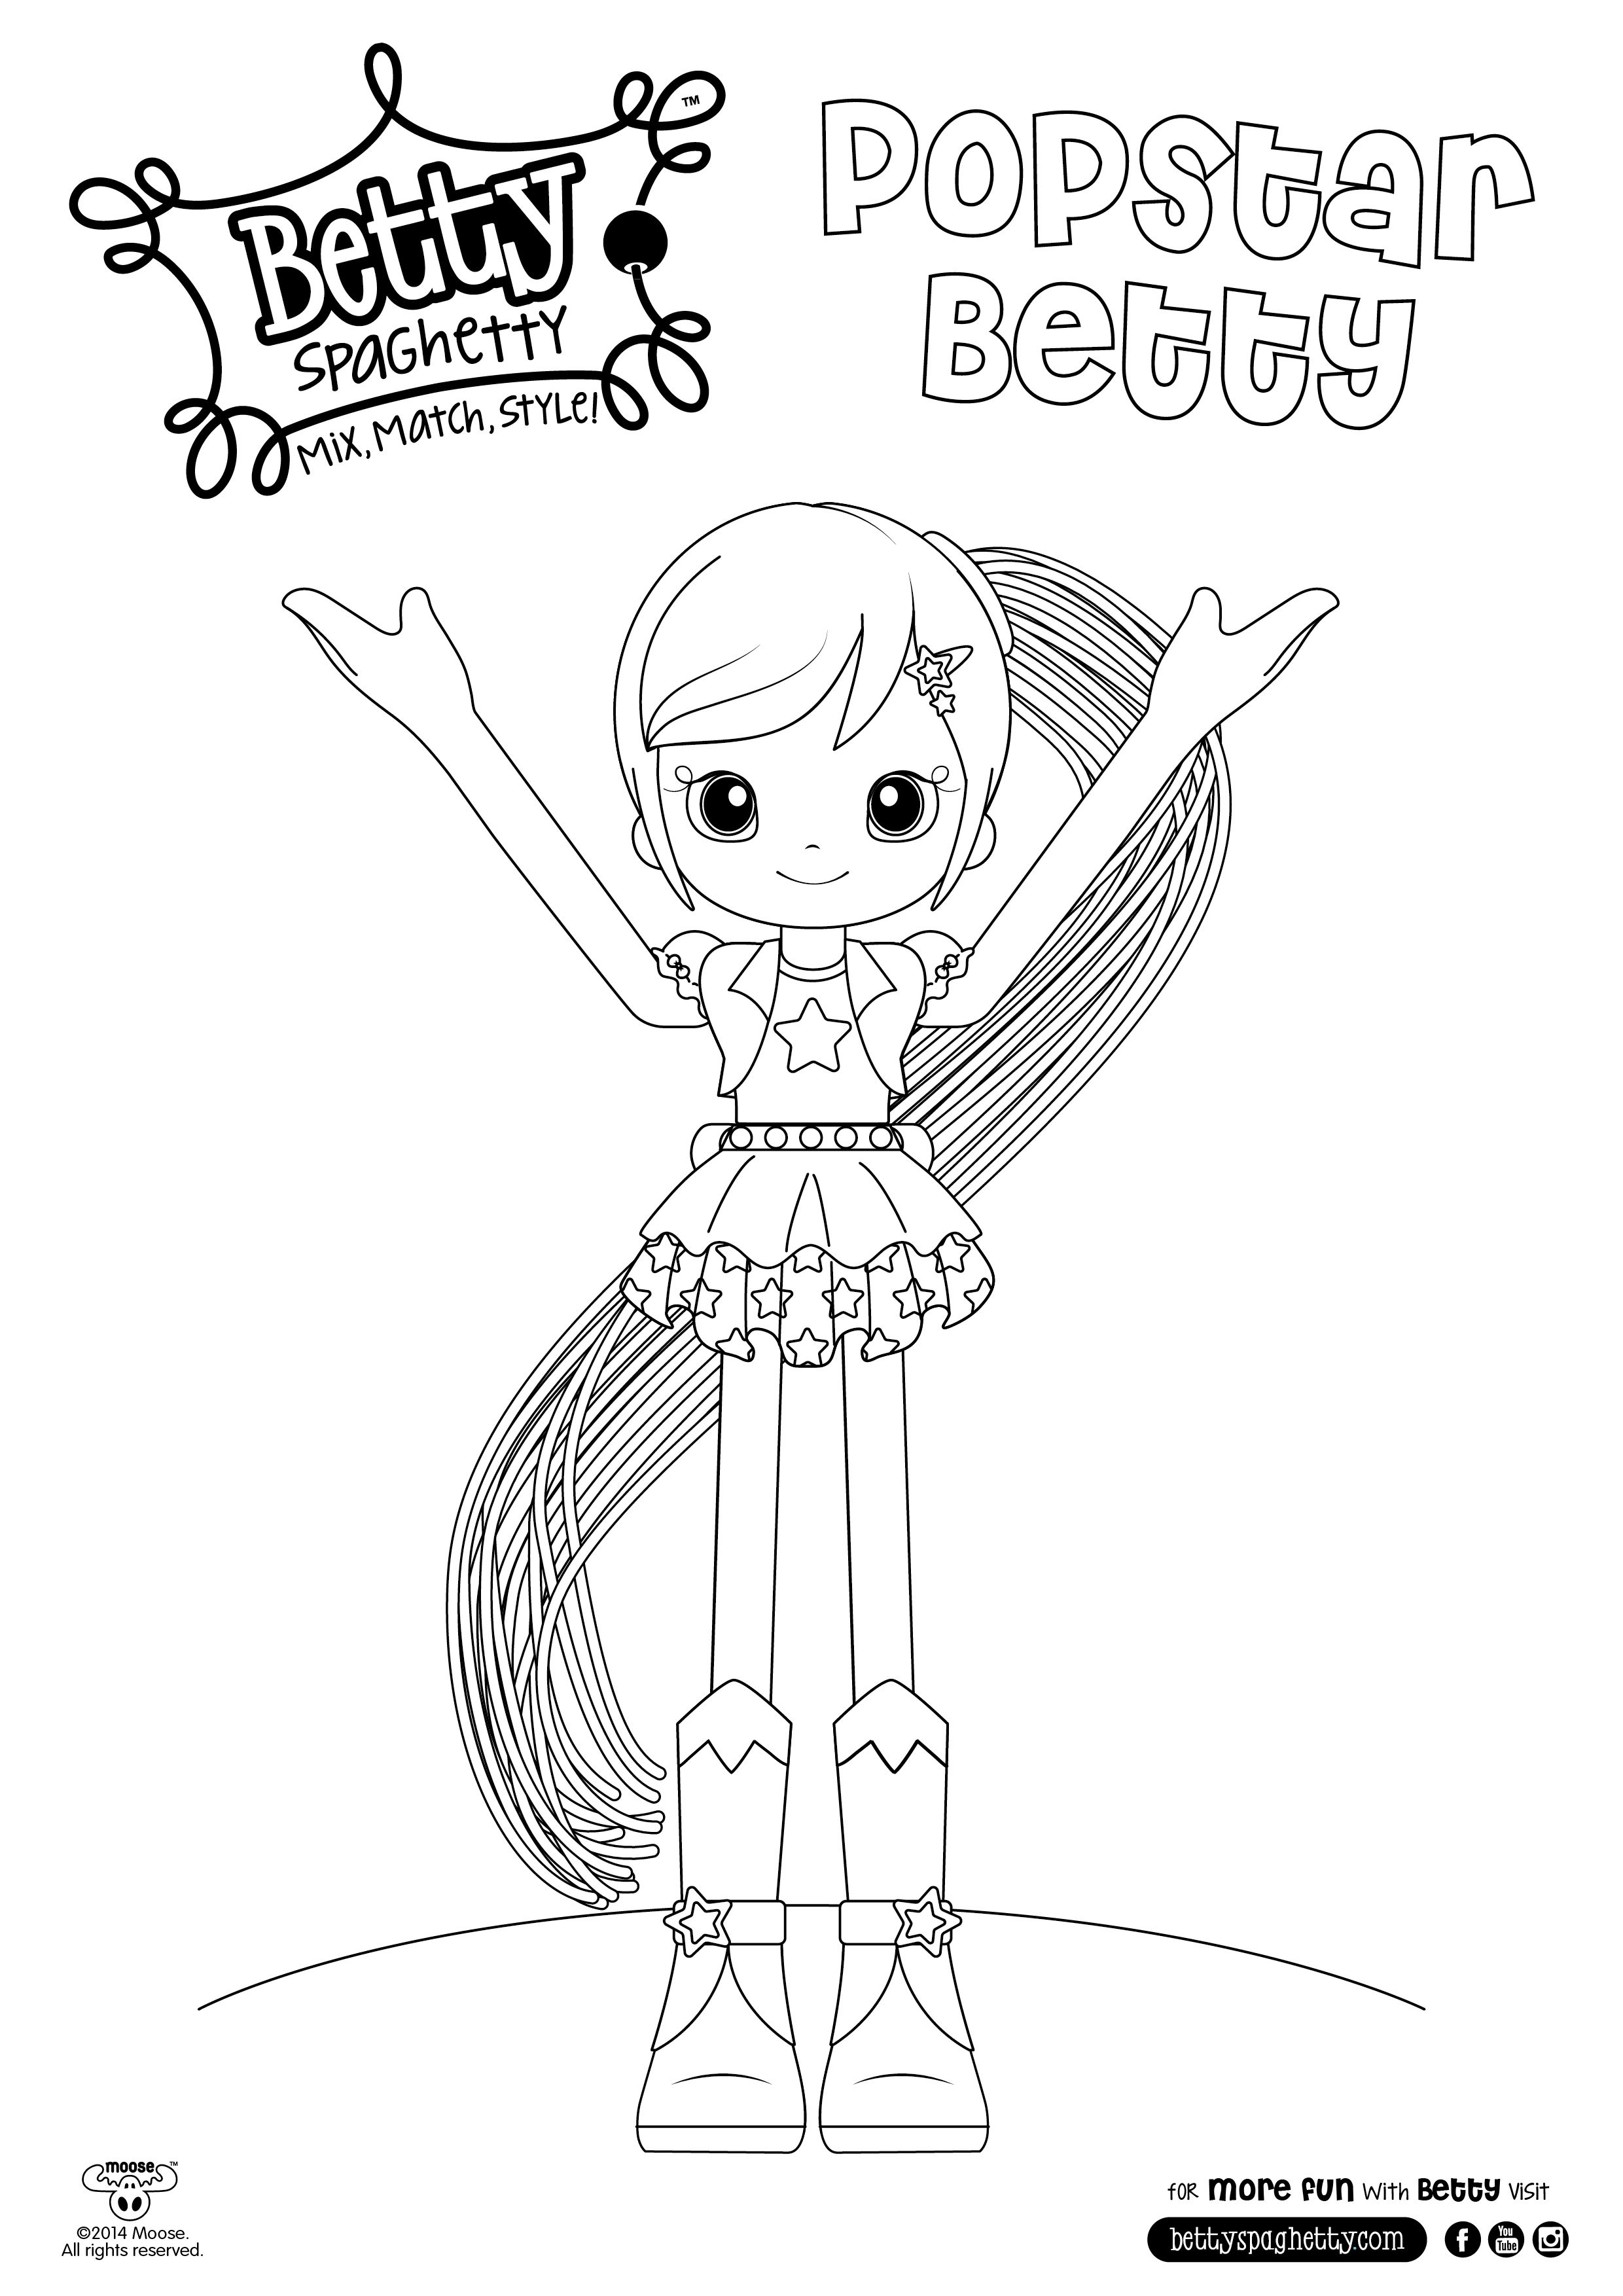 betty spaghetty coloring pages betty spaghetti coloring books betty spaghetty betty spaghetty pages coloring